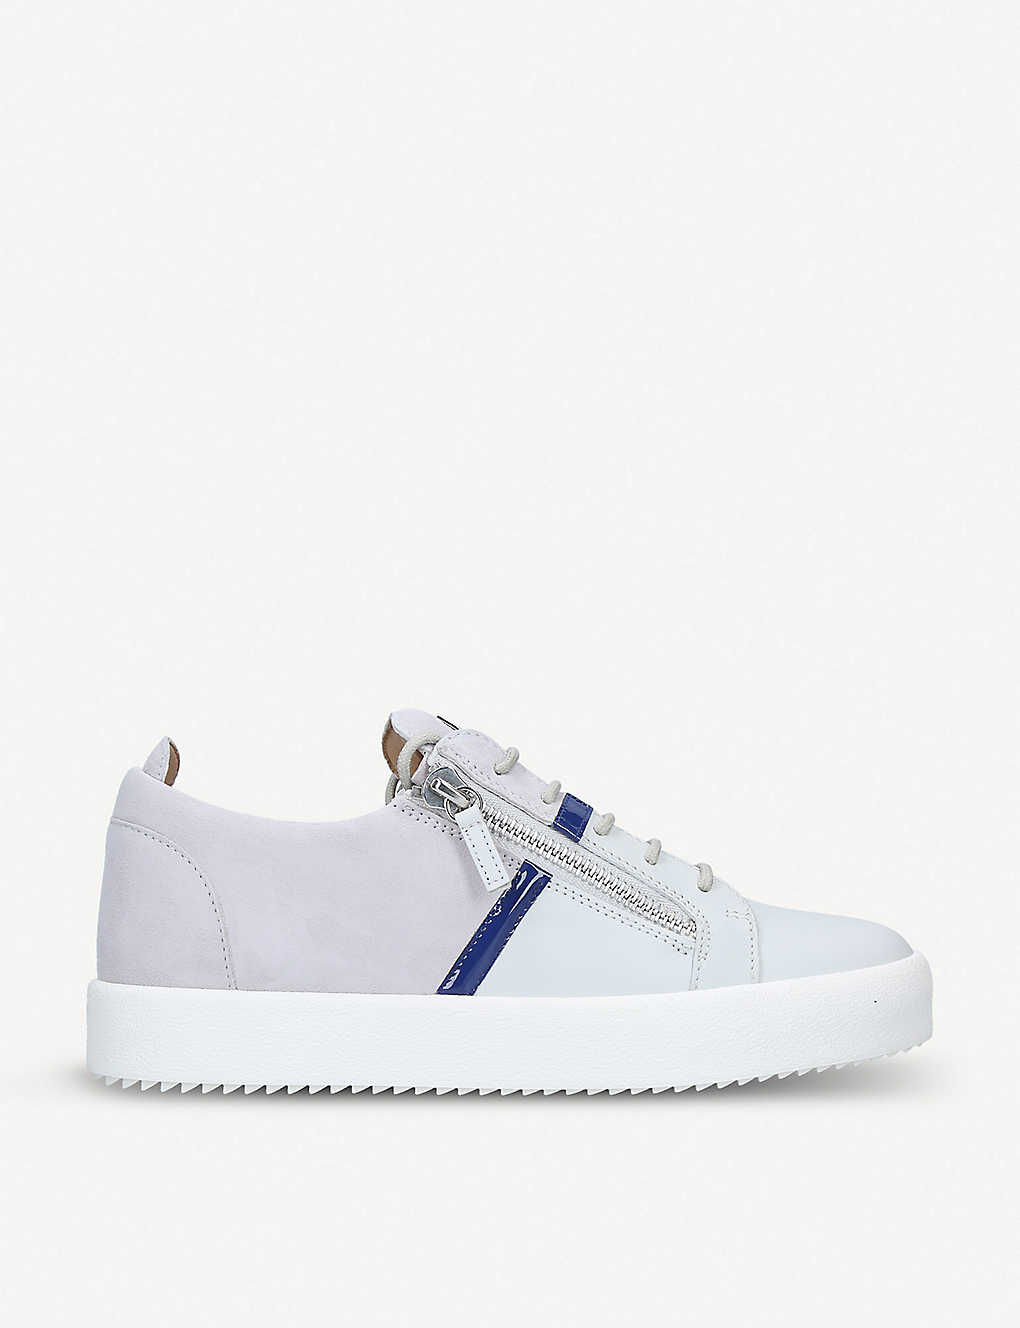 19106cd50d2c2 GIUSEPPE ZANOTTI - Two-tone leather and suede trainers | Selfridges.com